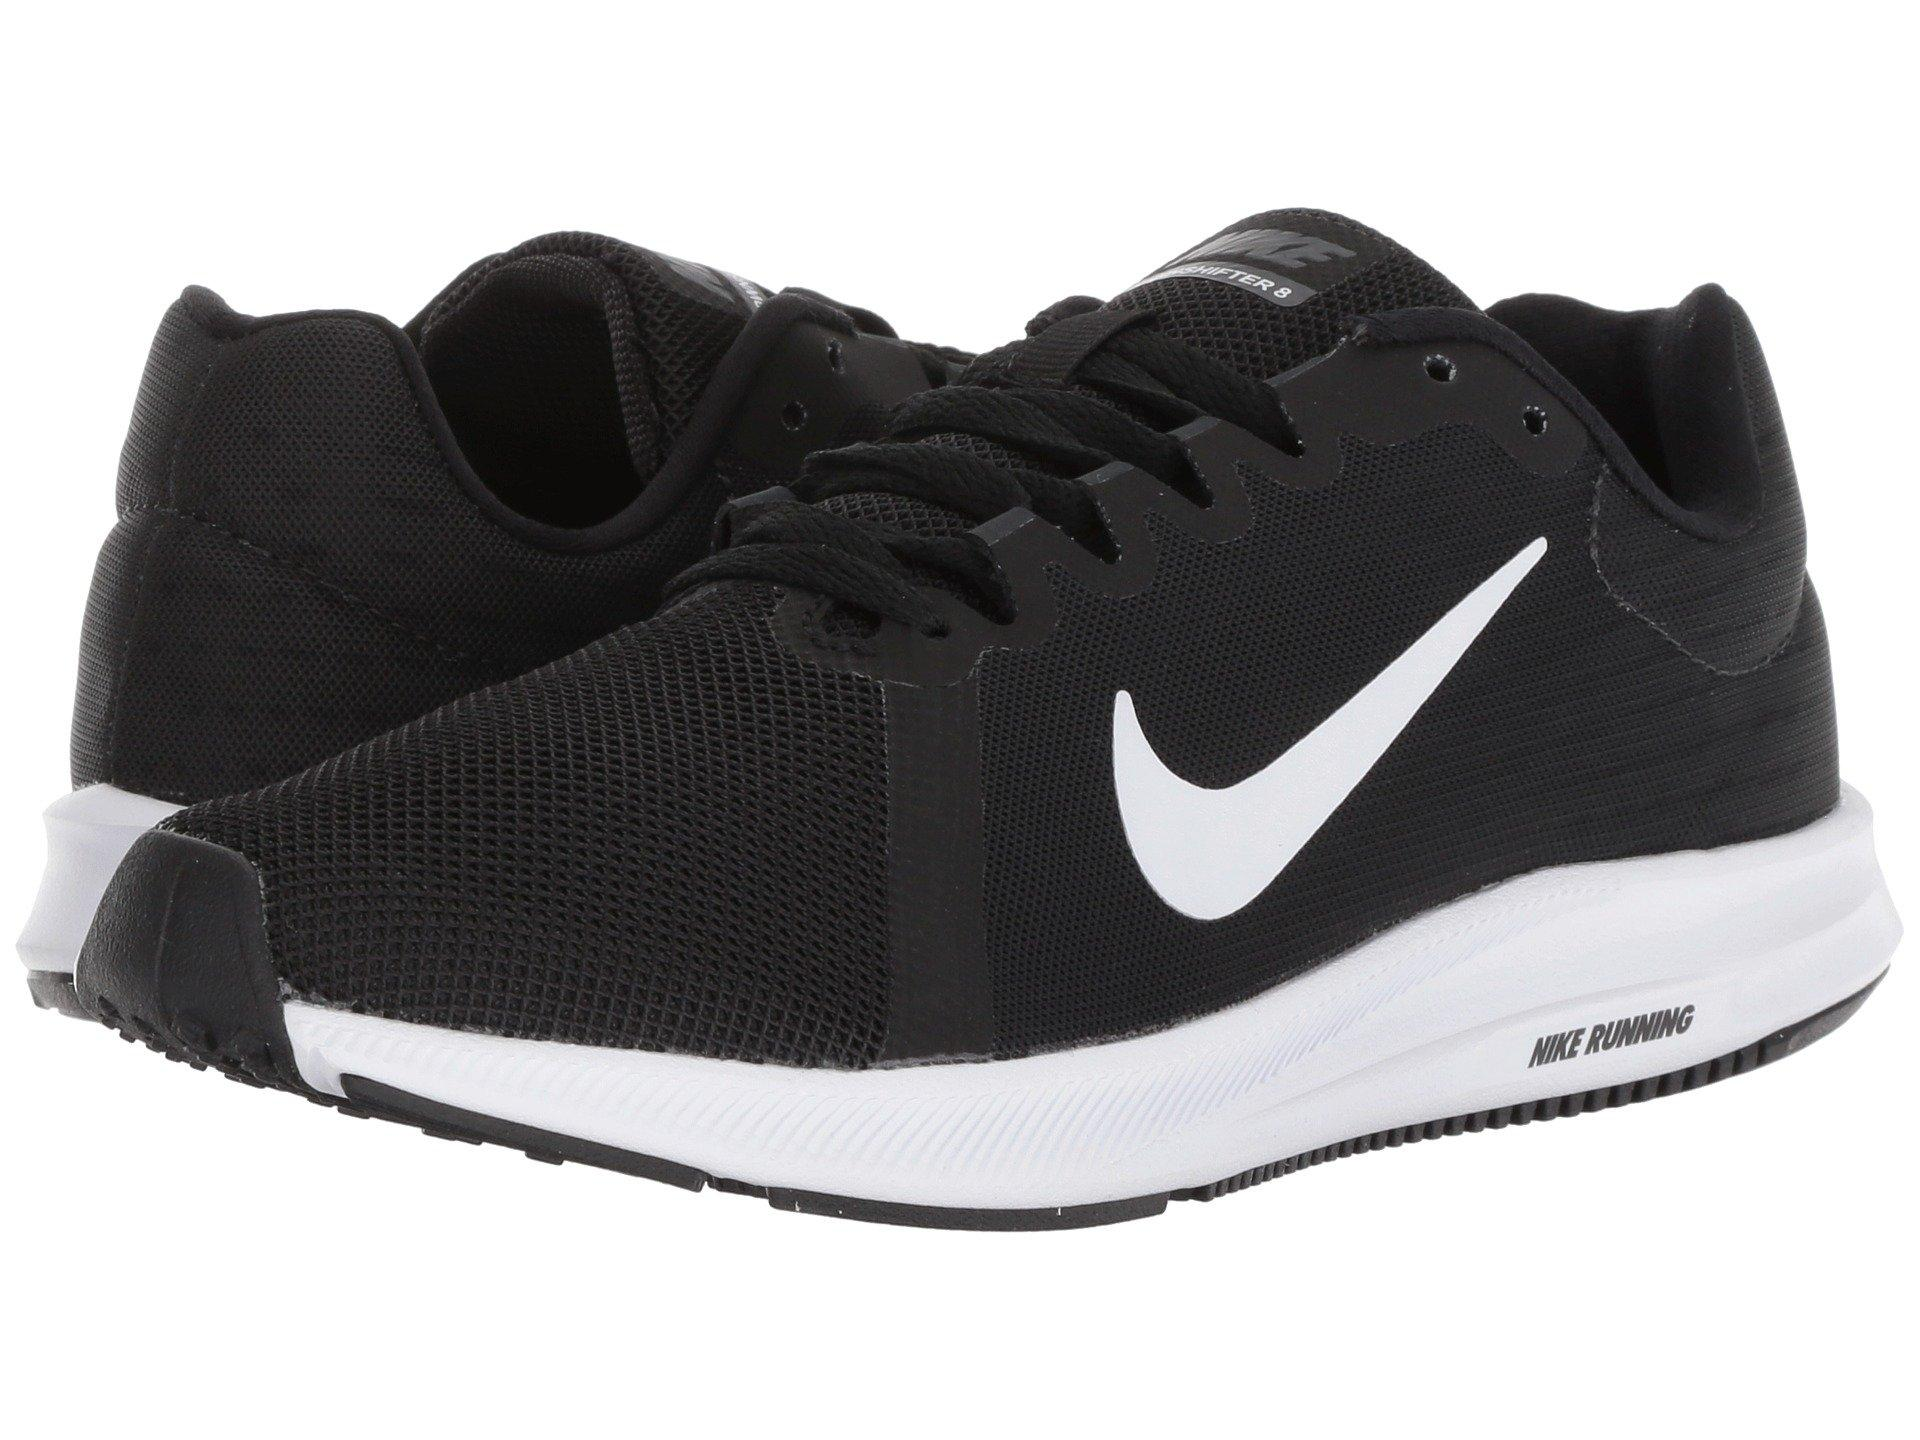 fa6de1f0a9cf9 Lyst - Nike Downshifter 8 in Black for Men - Save 22%